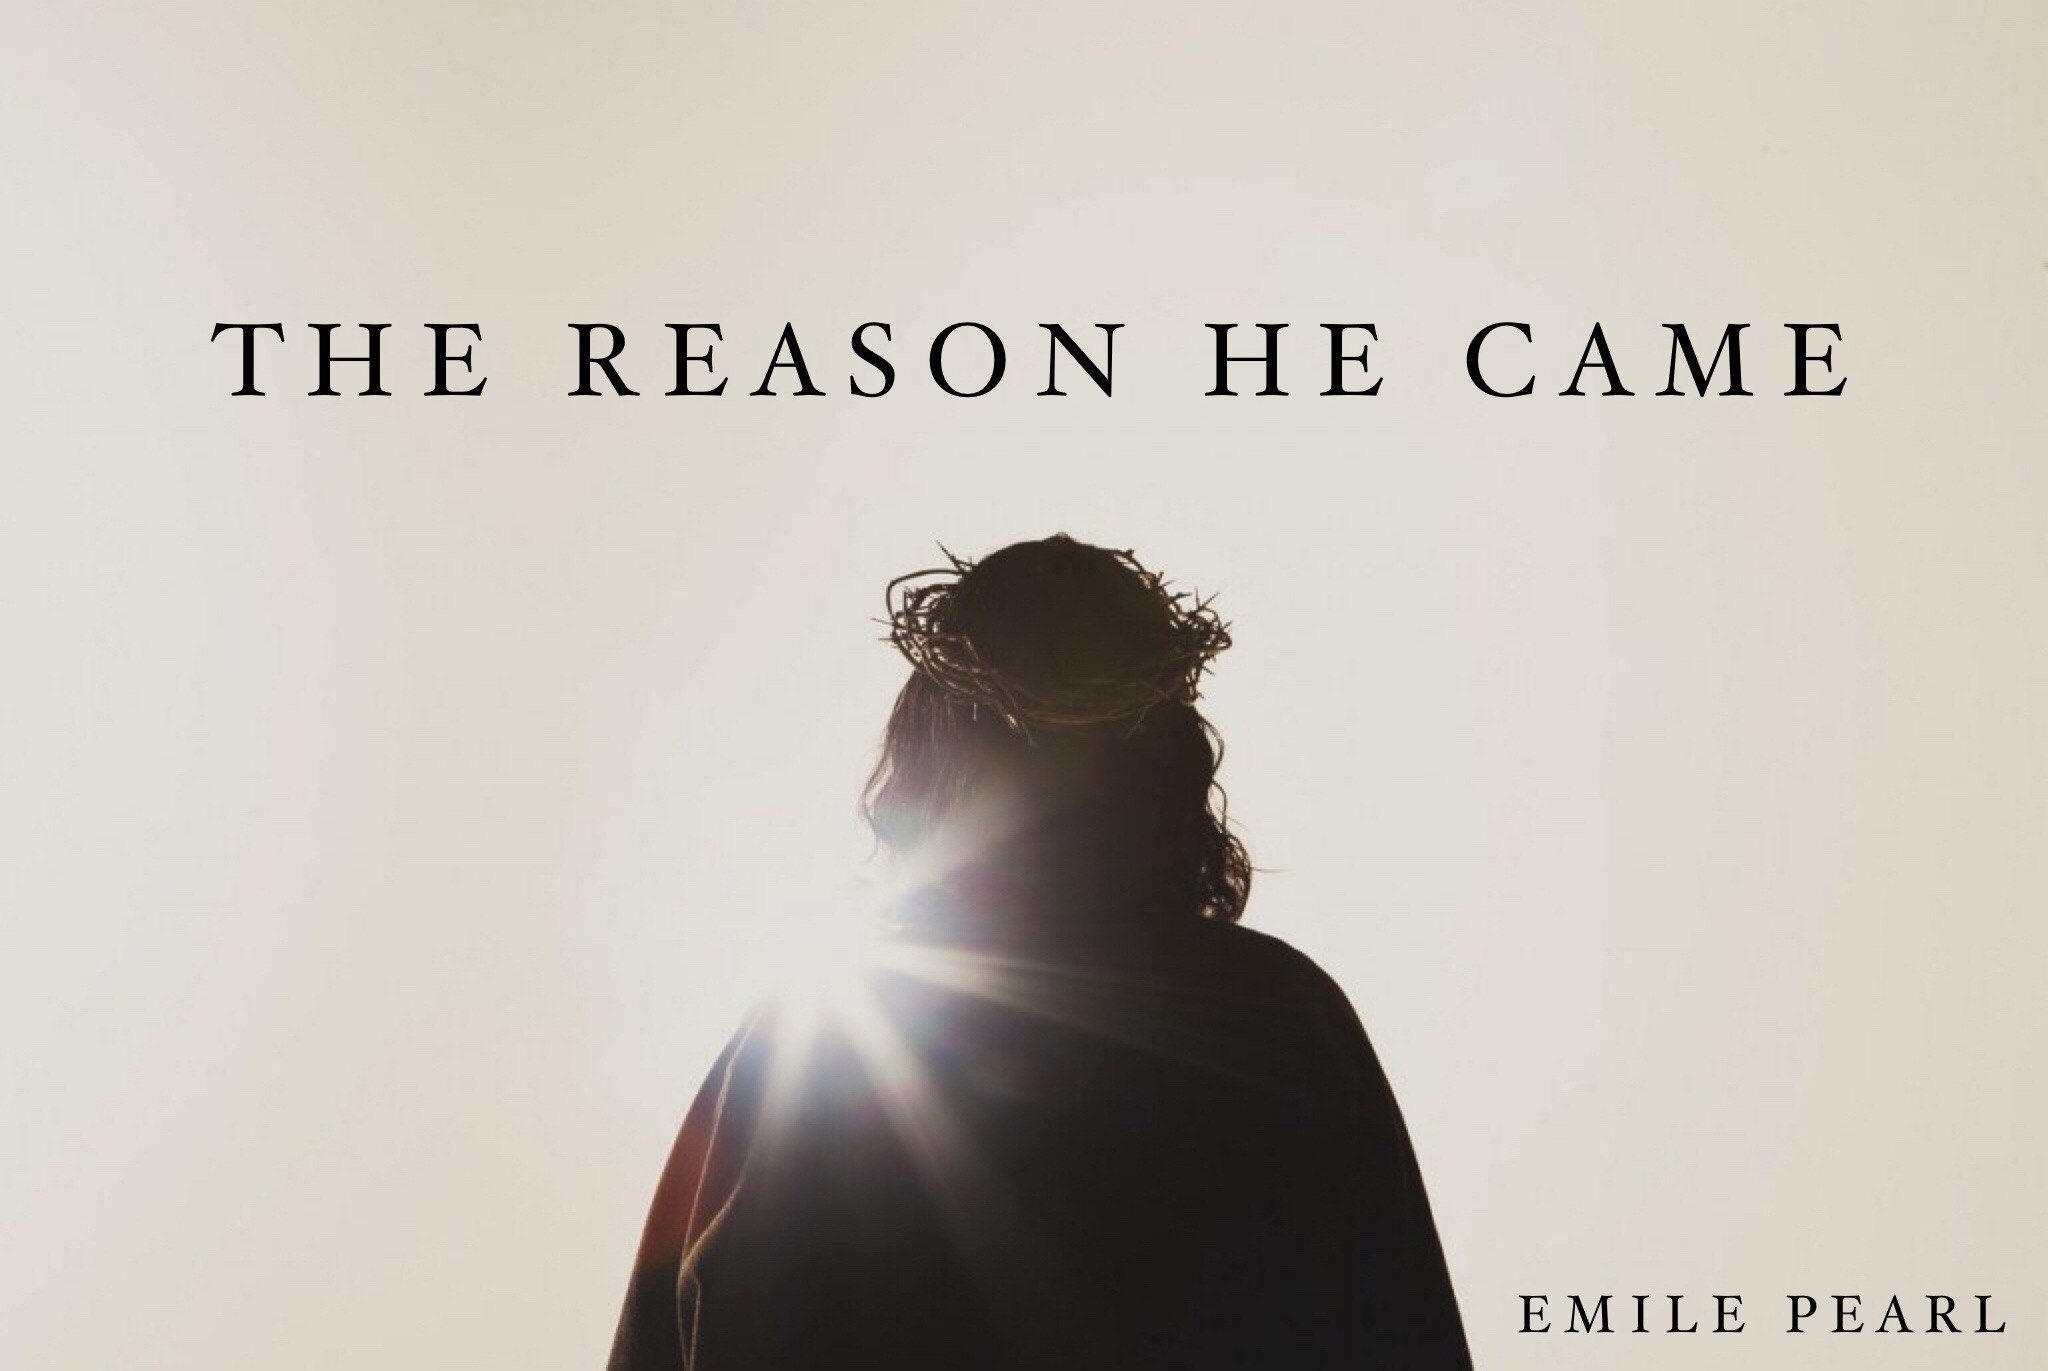 The Reason He Came